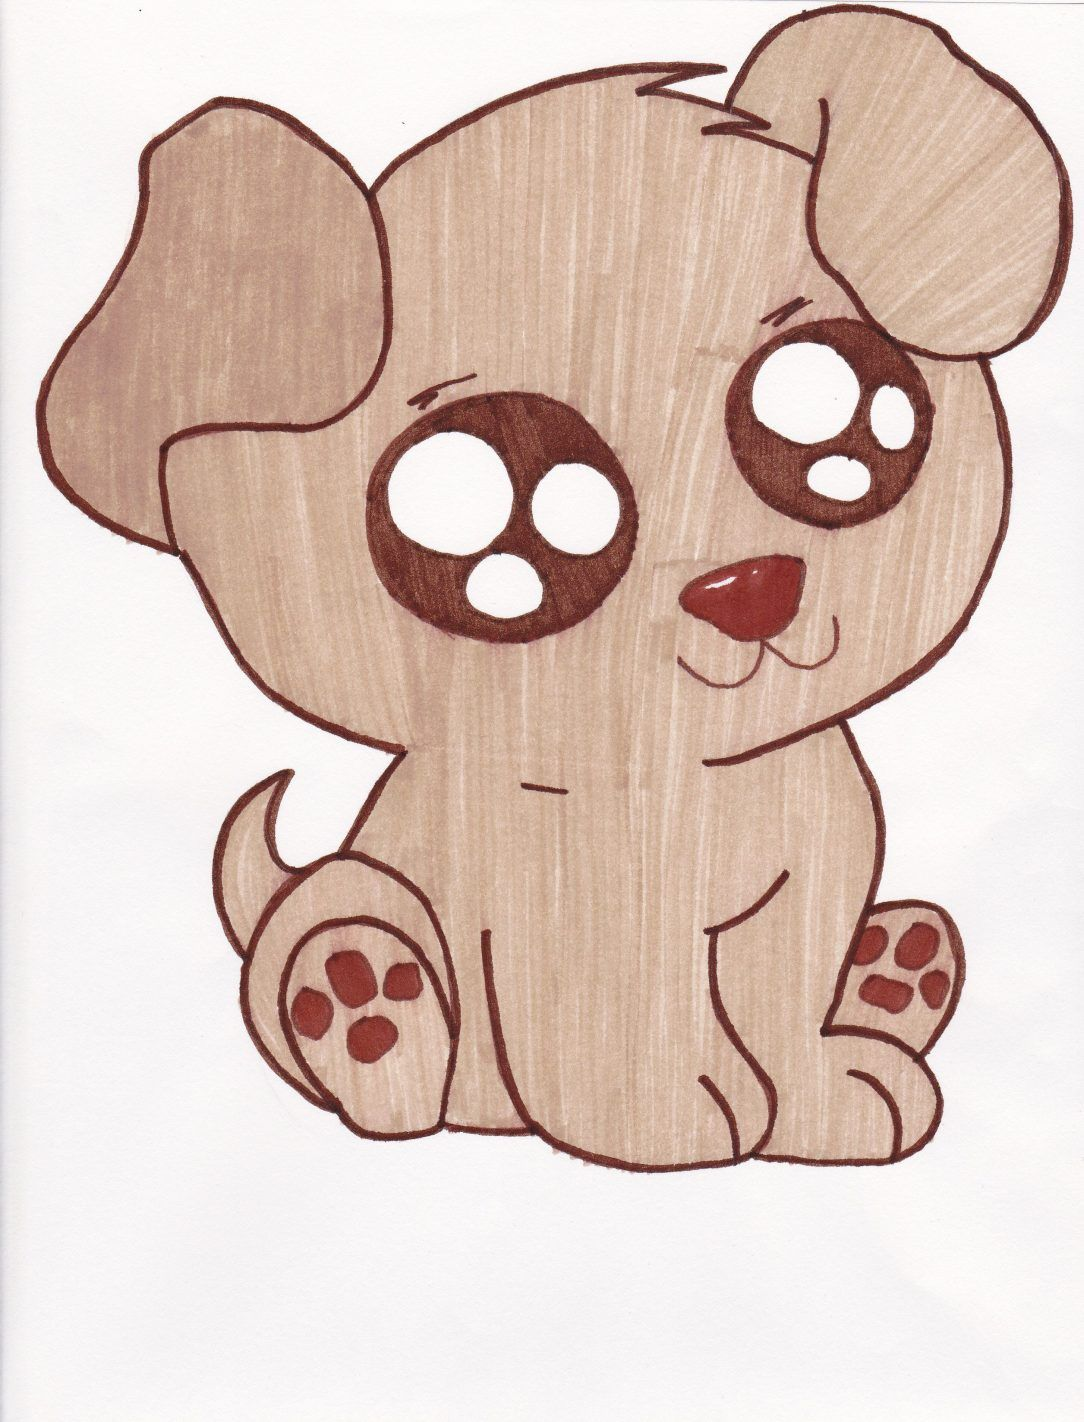 Cartoon Puppy Drawing Face Of A Dog Images Cute Drawings Tumblr Cute Dog Drawing Cute Drawings